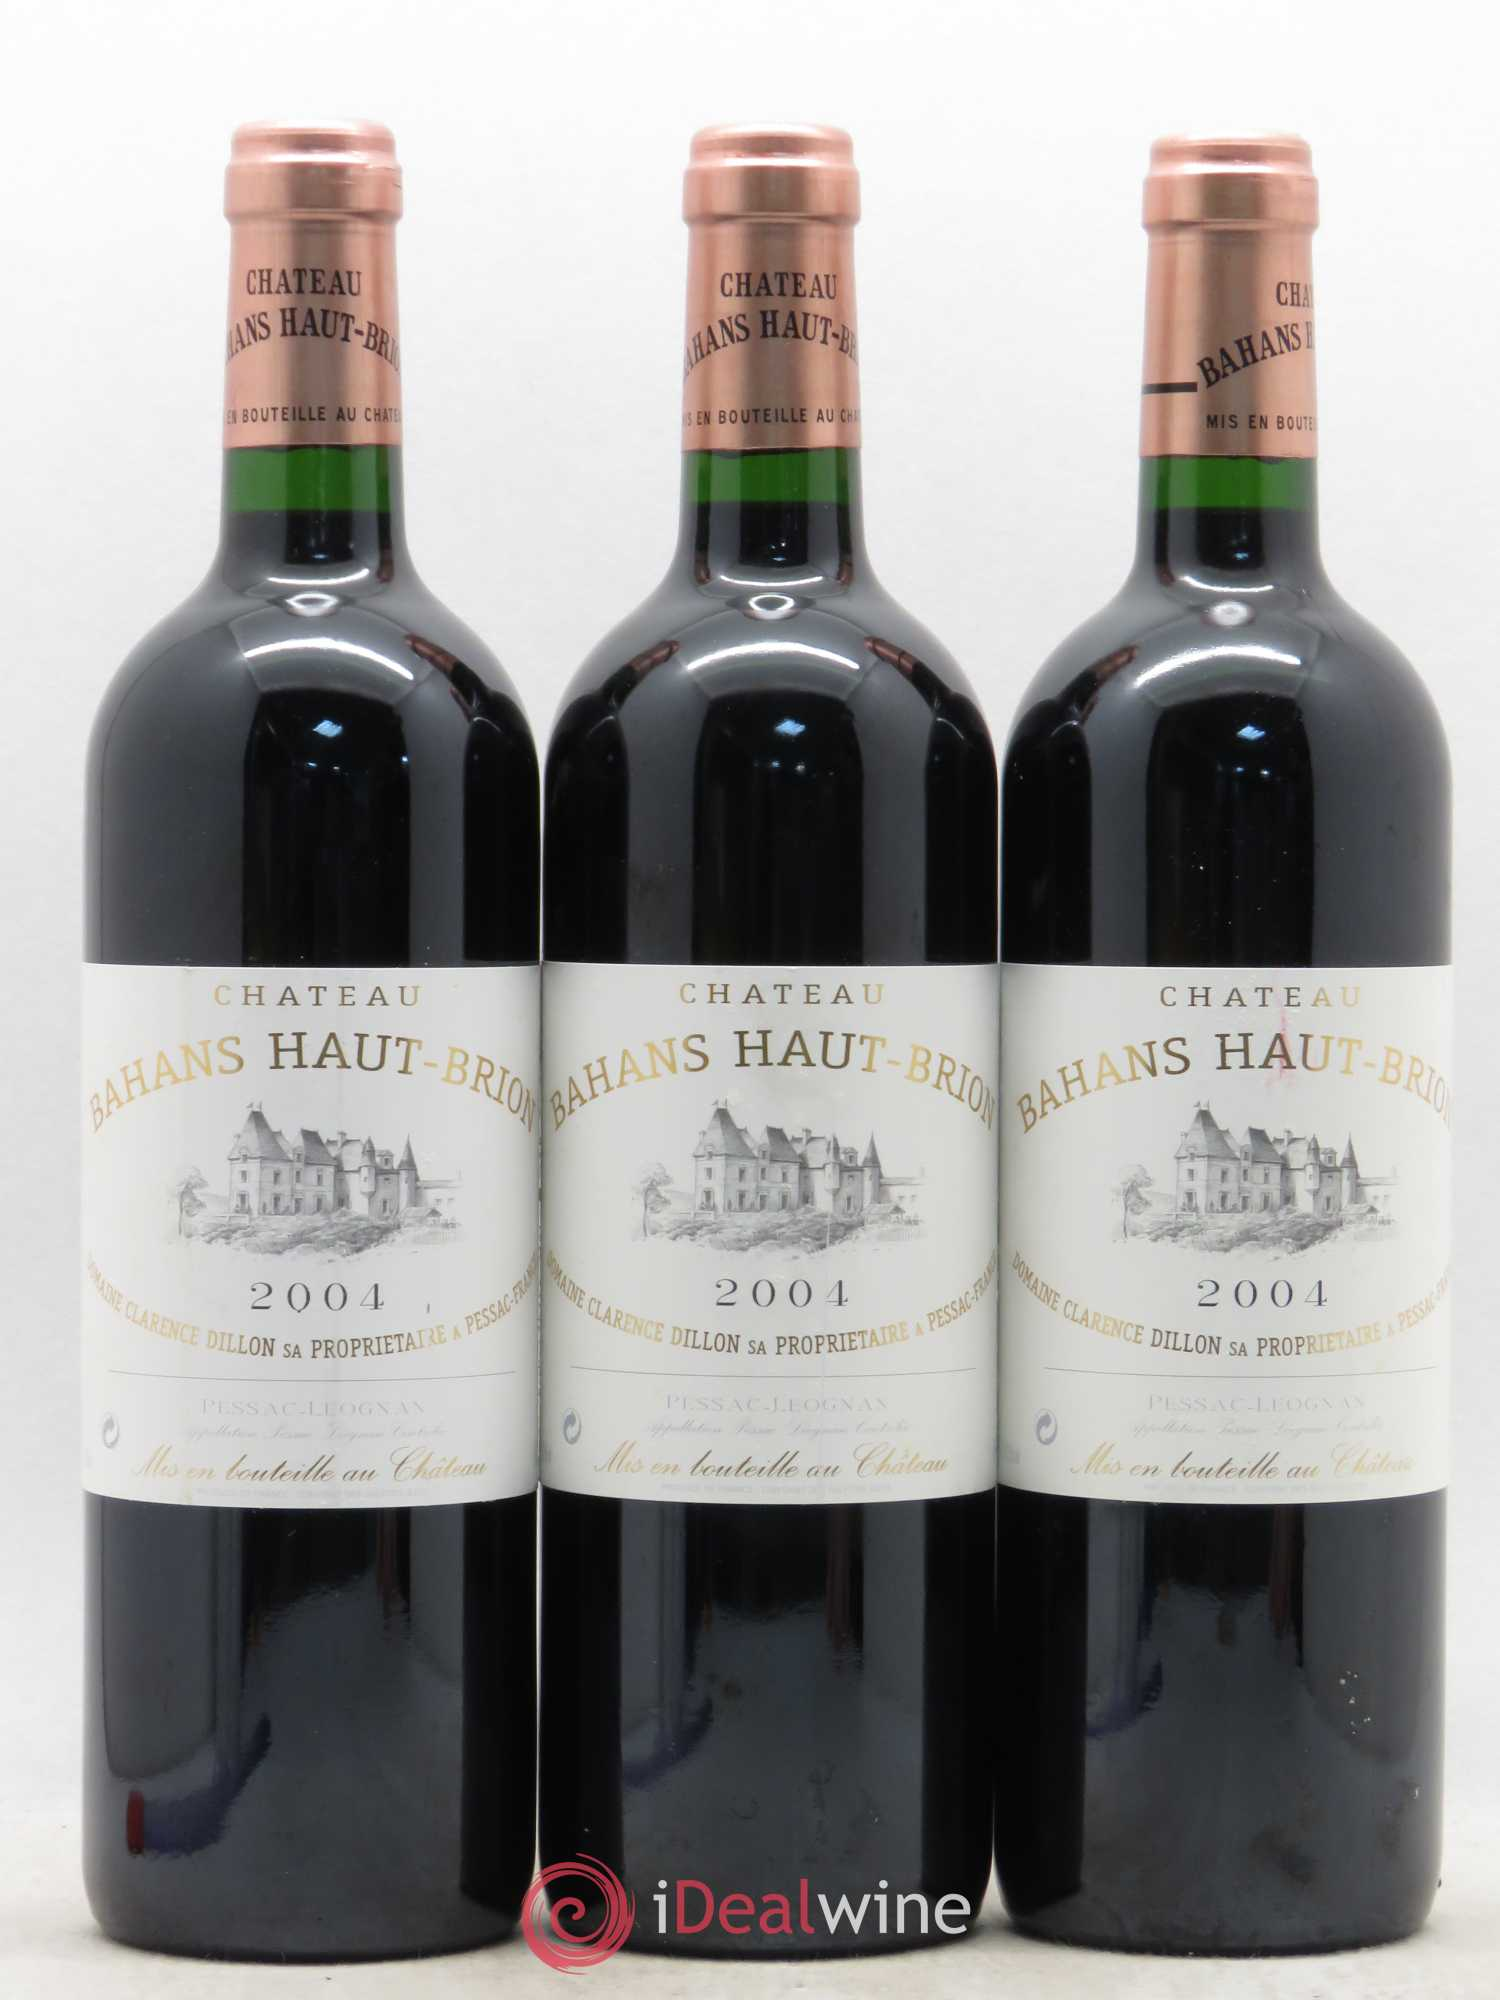 Clarence (Bahans) de Haut-Brion Second Vin  2004 - Lot of 3 Bottles